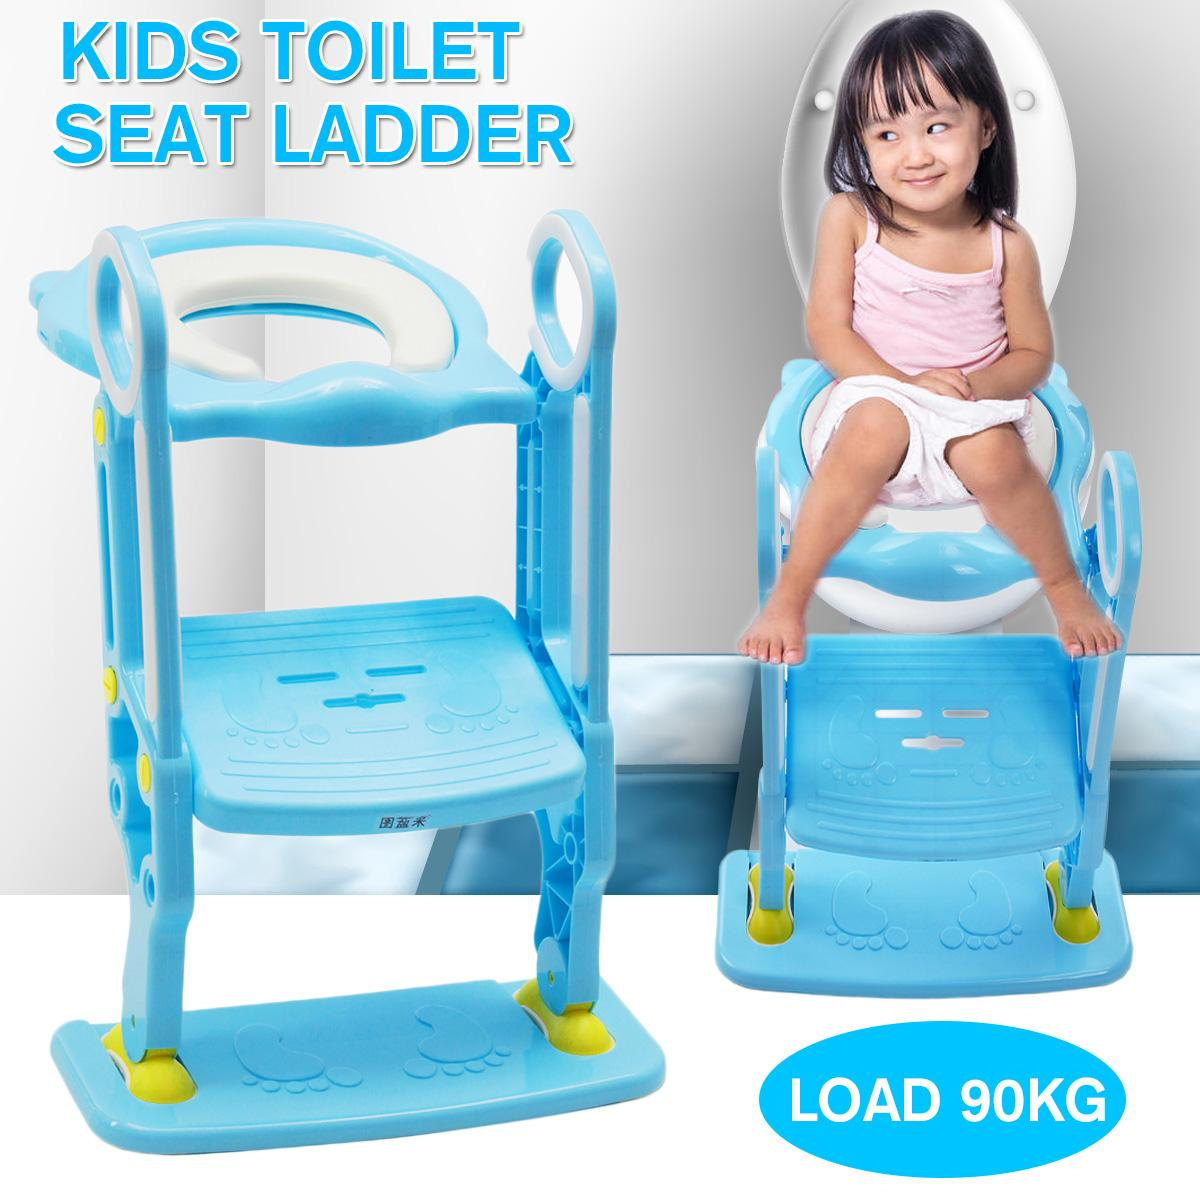 Folding Potty Infant Kids Toilet Training Seat Load 90KG With Adjustable Ladder Portable Urinal Potty Training Seats Seat Ladder